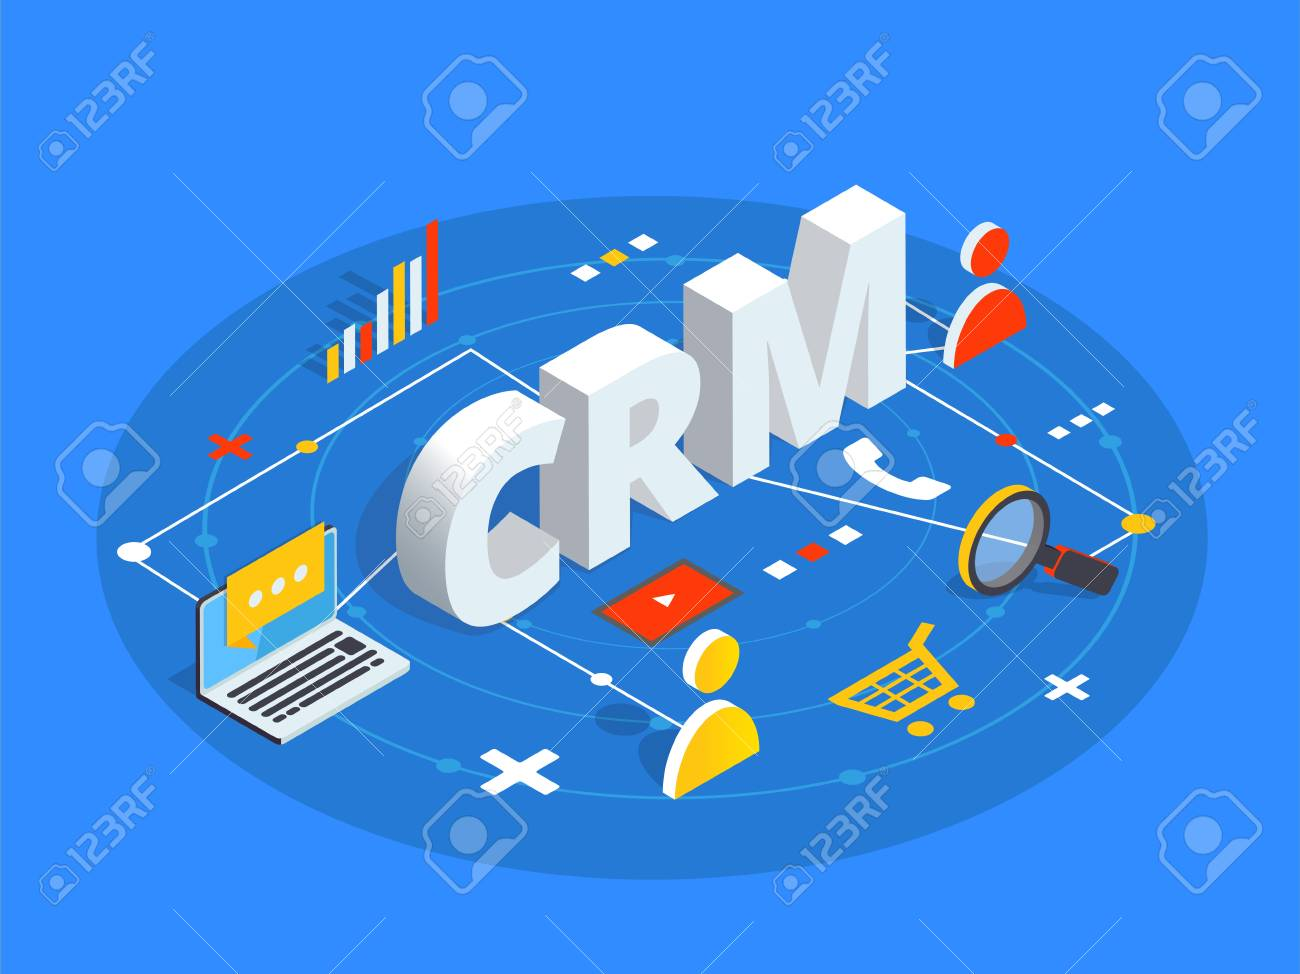 CRM isometric vector illustration. Customer relationship management concept background. Customer and company interaction approach. - 90412660